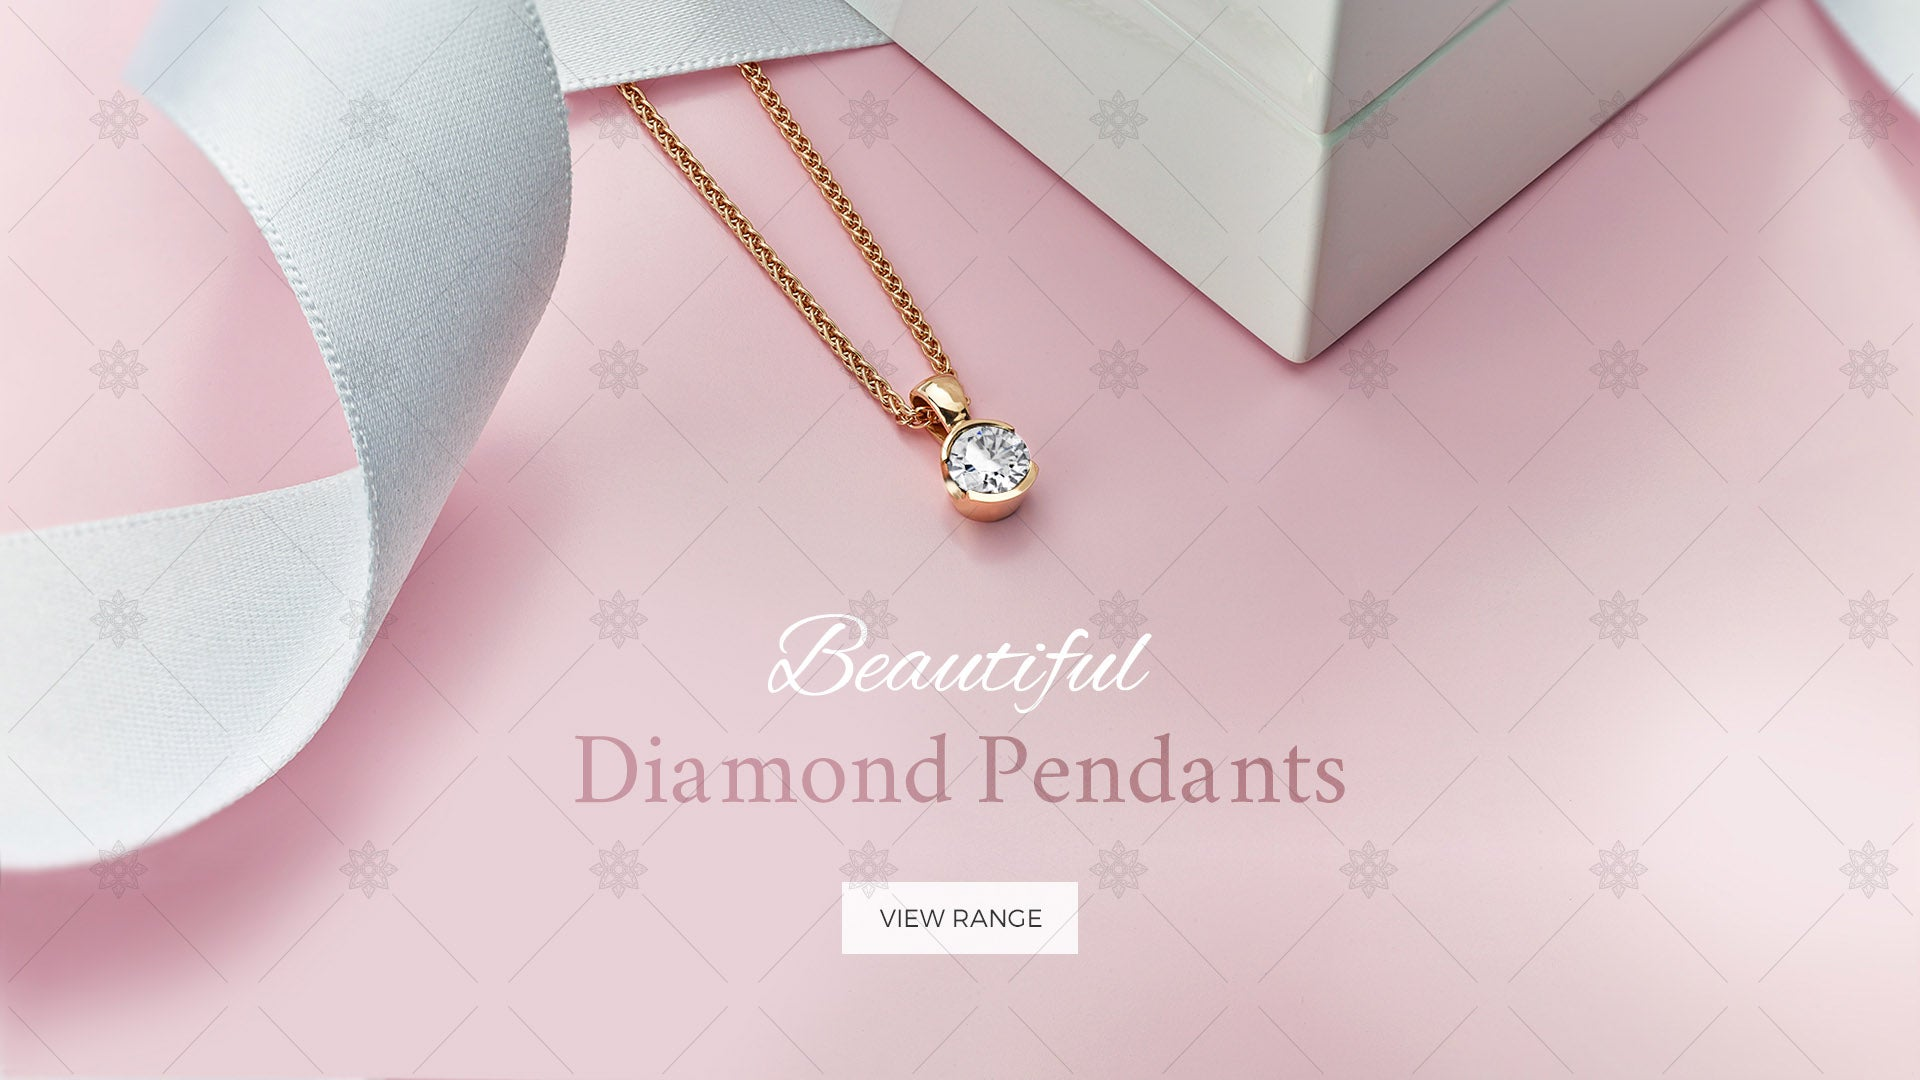 Diamond Pendants website banner